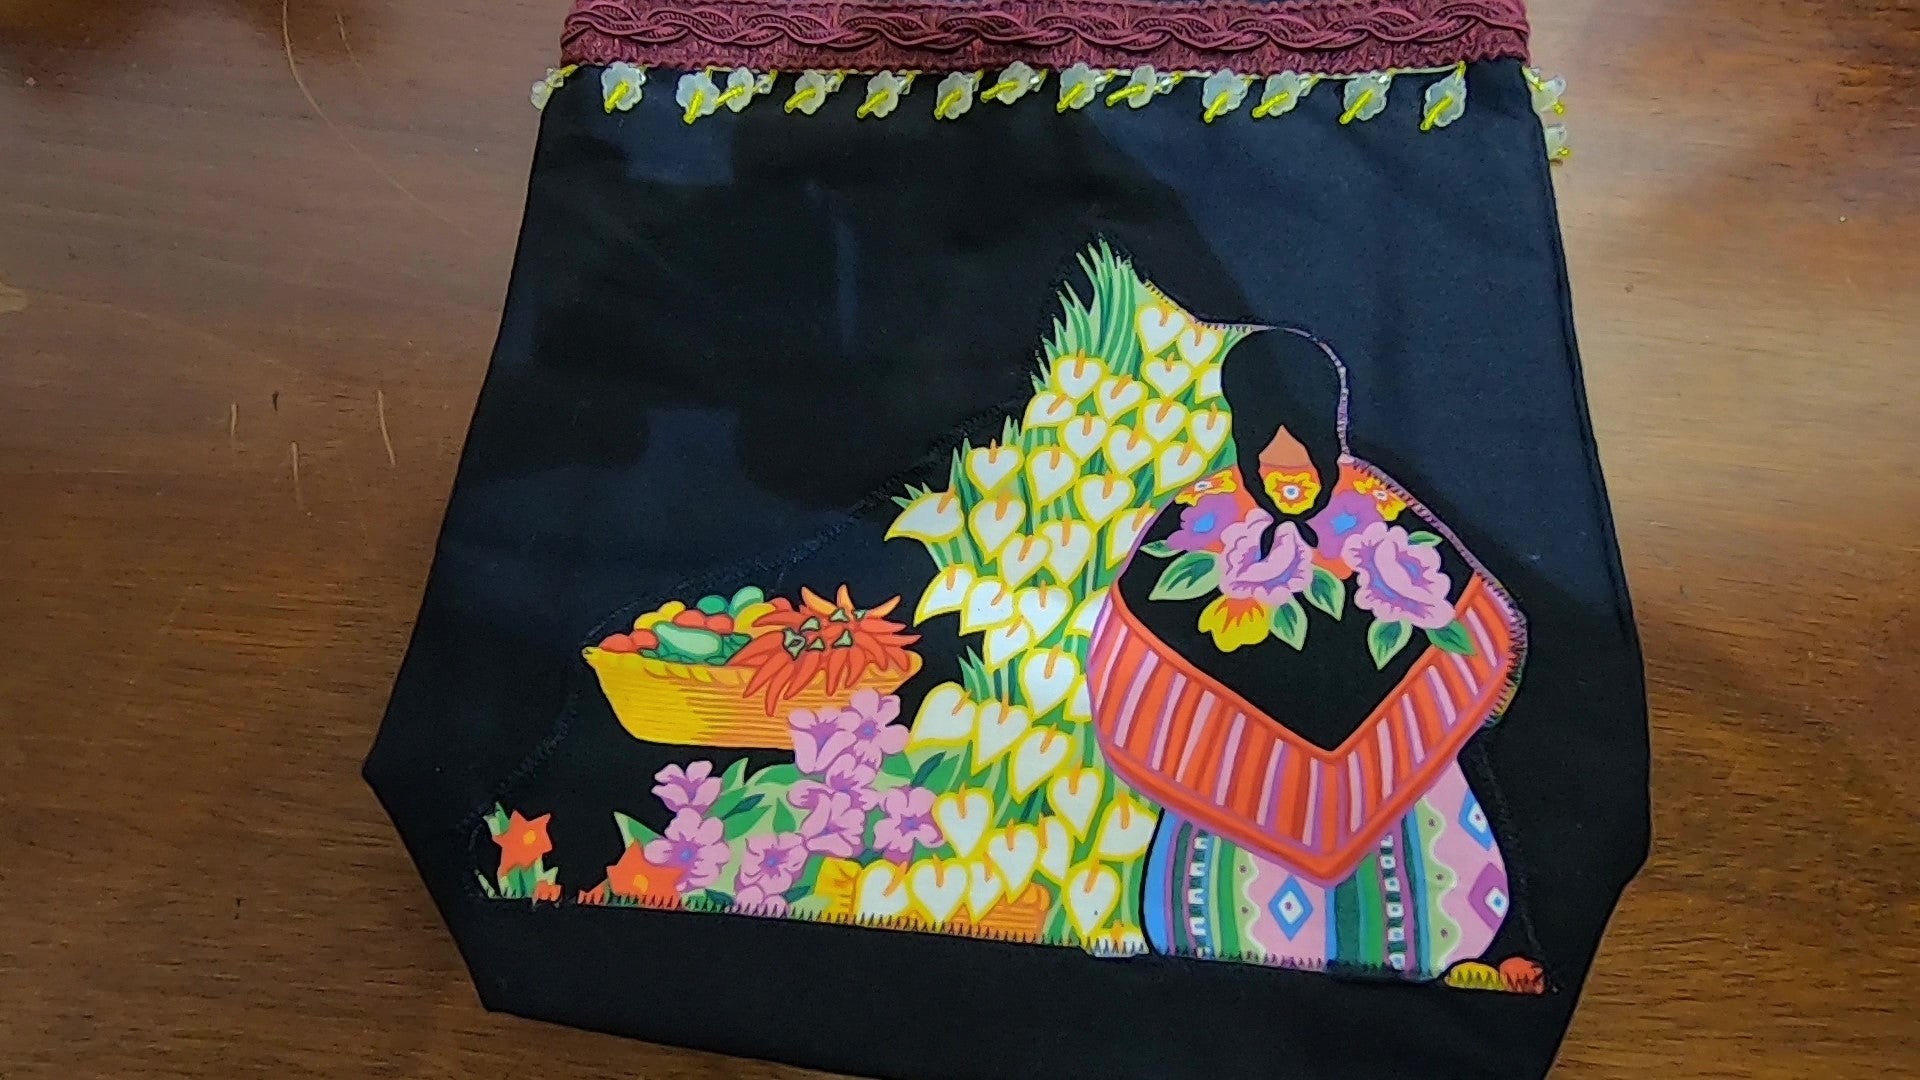 EL MERCADO Large Totebag by Dazzle Me Bag Designs  Organizers in the Interior $70